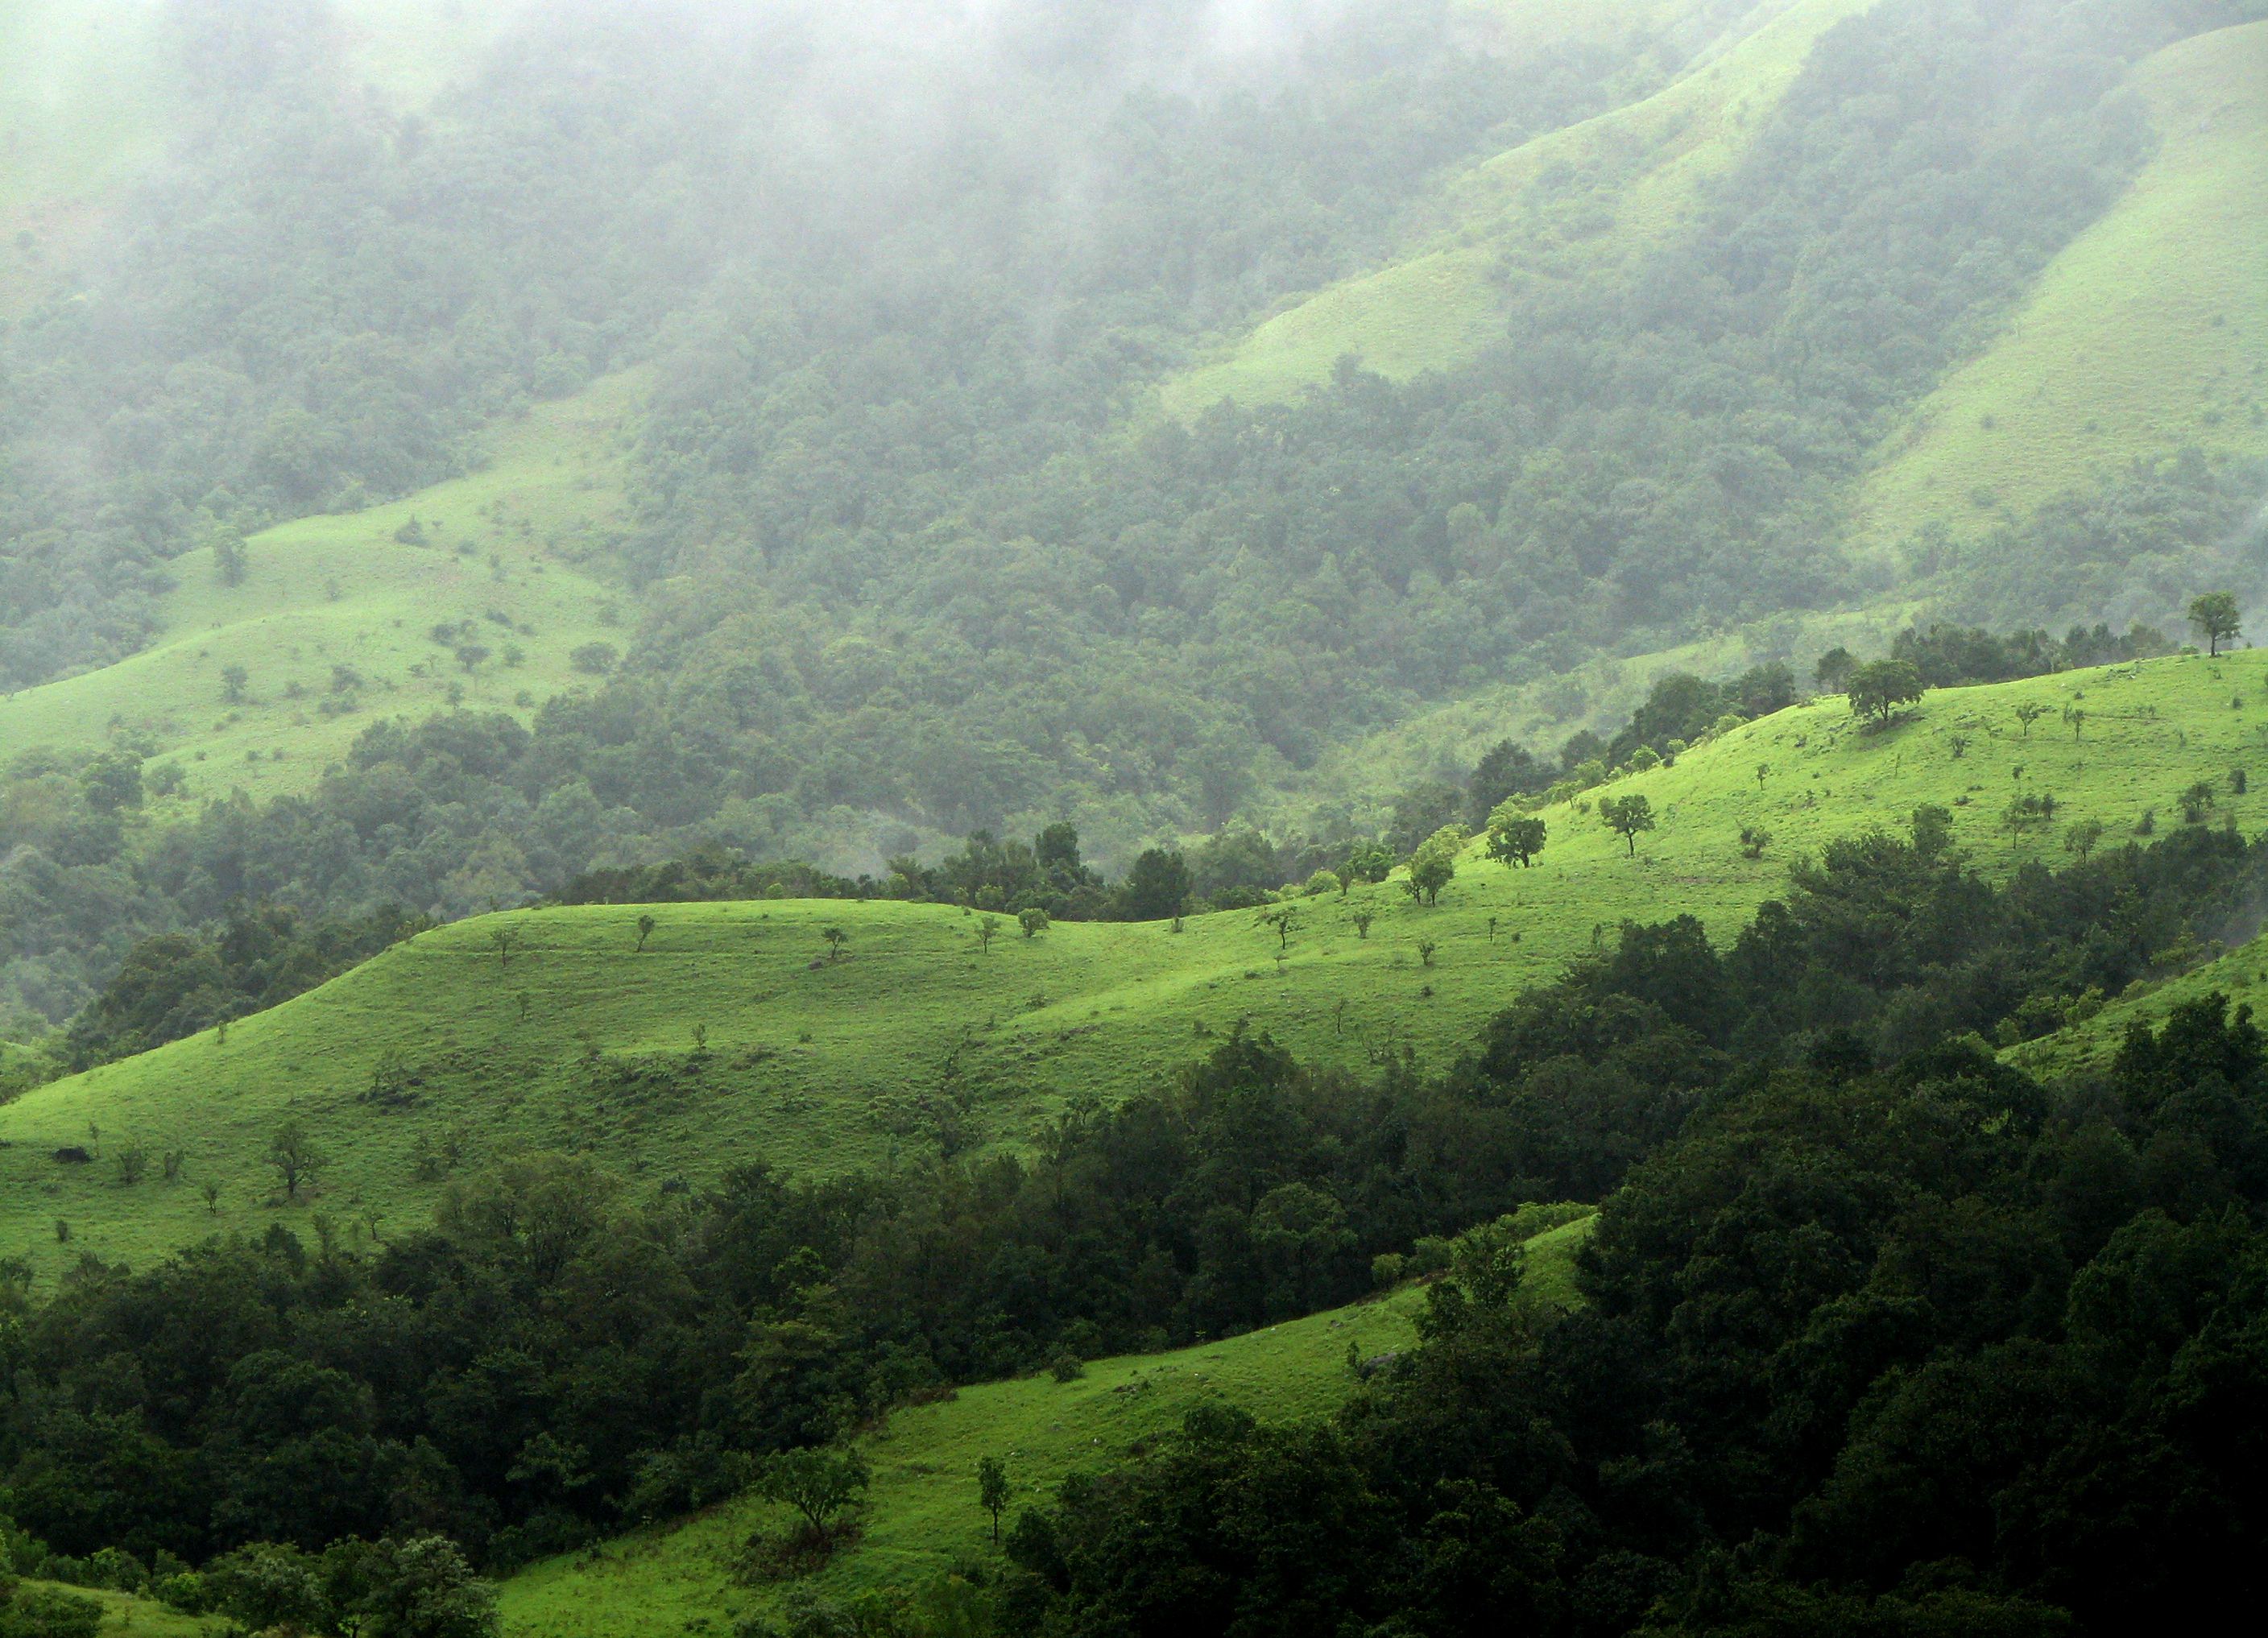 western ghats hill station in india